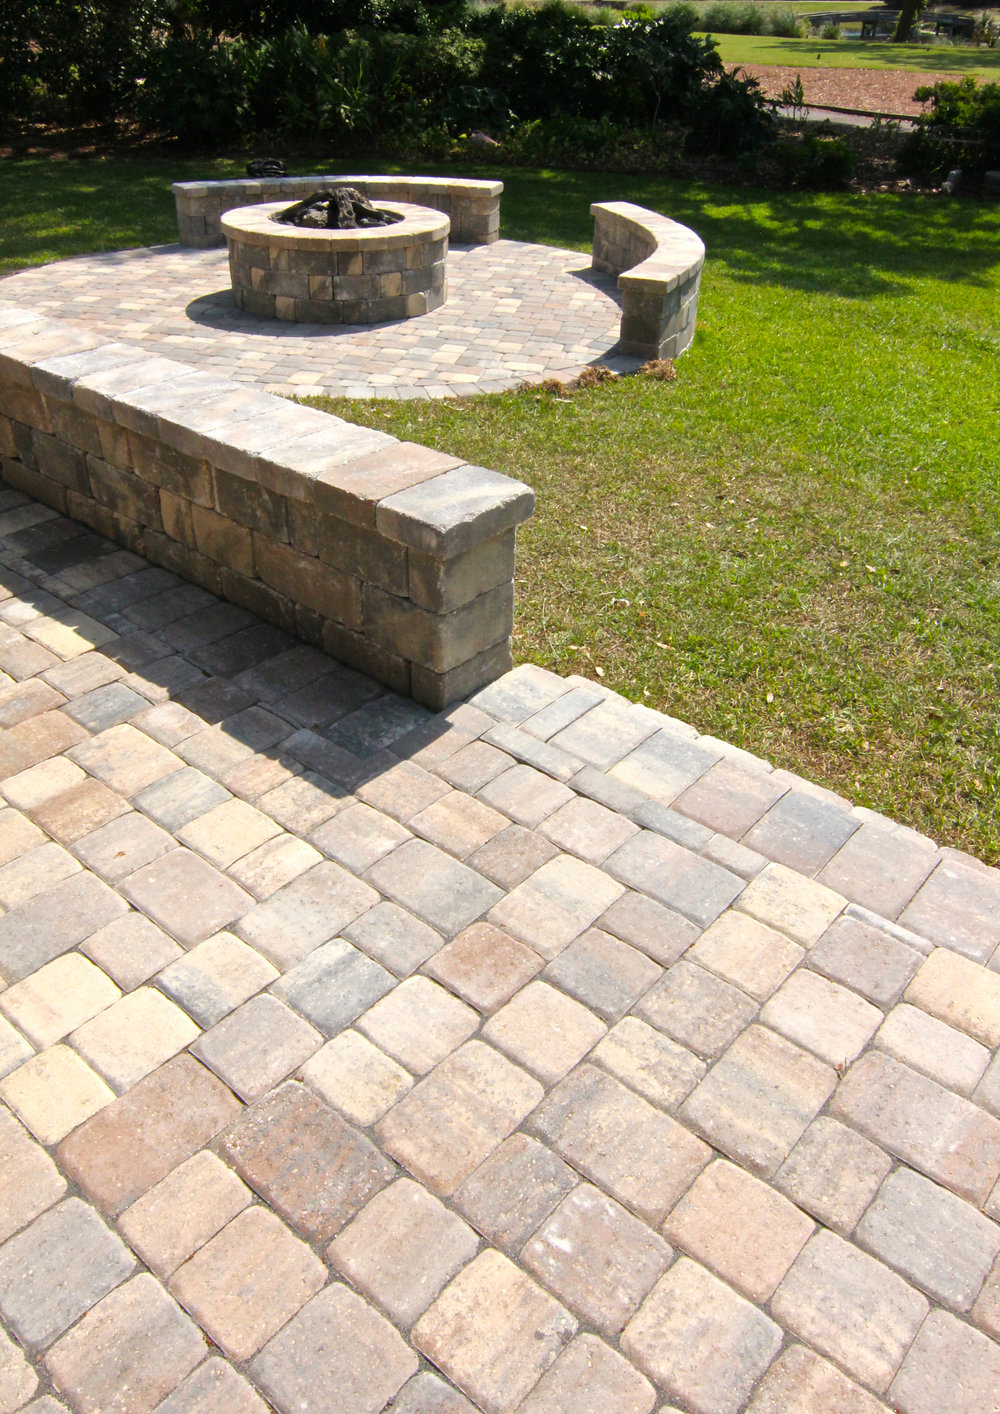 Retaining Wall Block Around Paver Patios Designs - Bluffton, SC